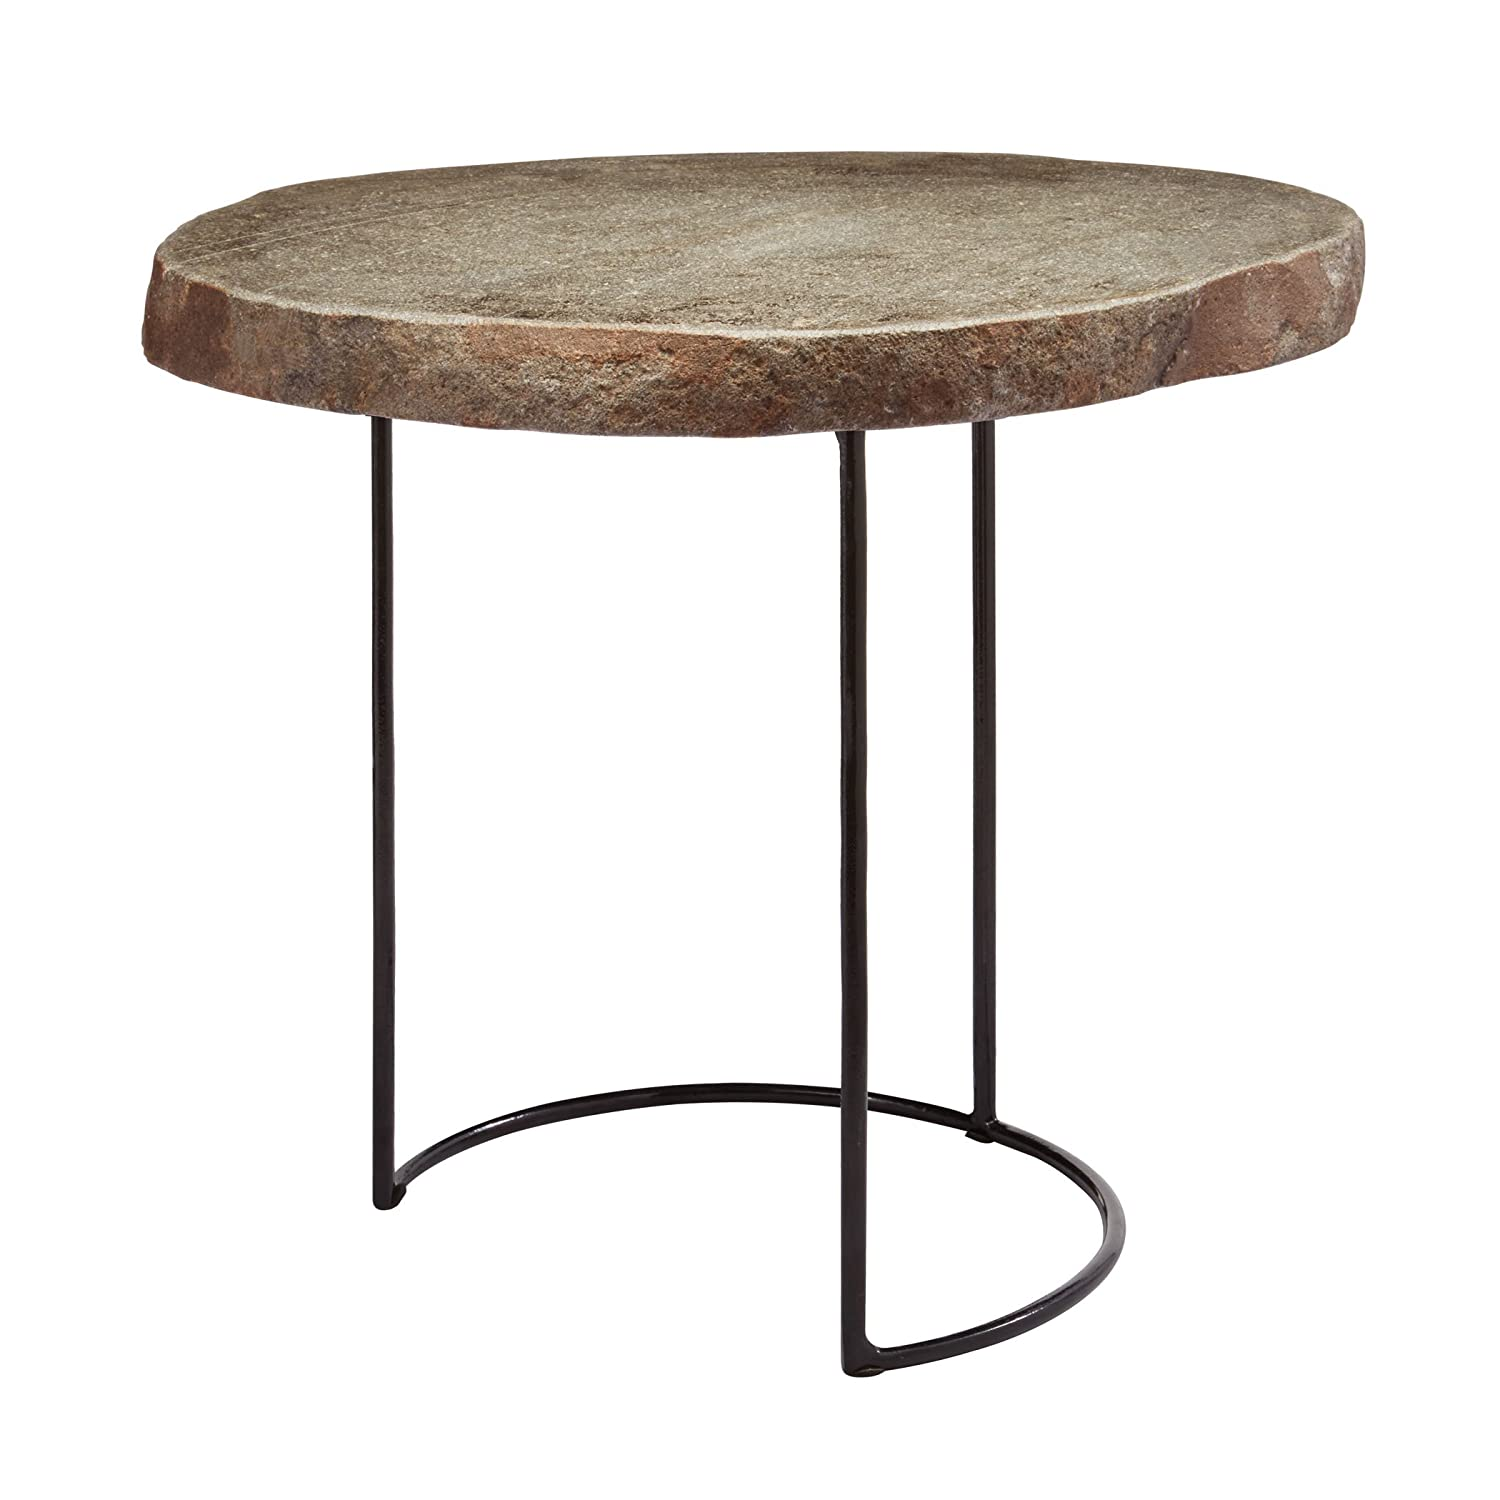 """Dimond Home 159-010 Short Stone Slab and Wire Frame Table, 17"""" x 14"""" x 16"""", Natural"""